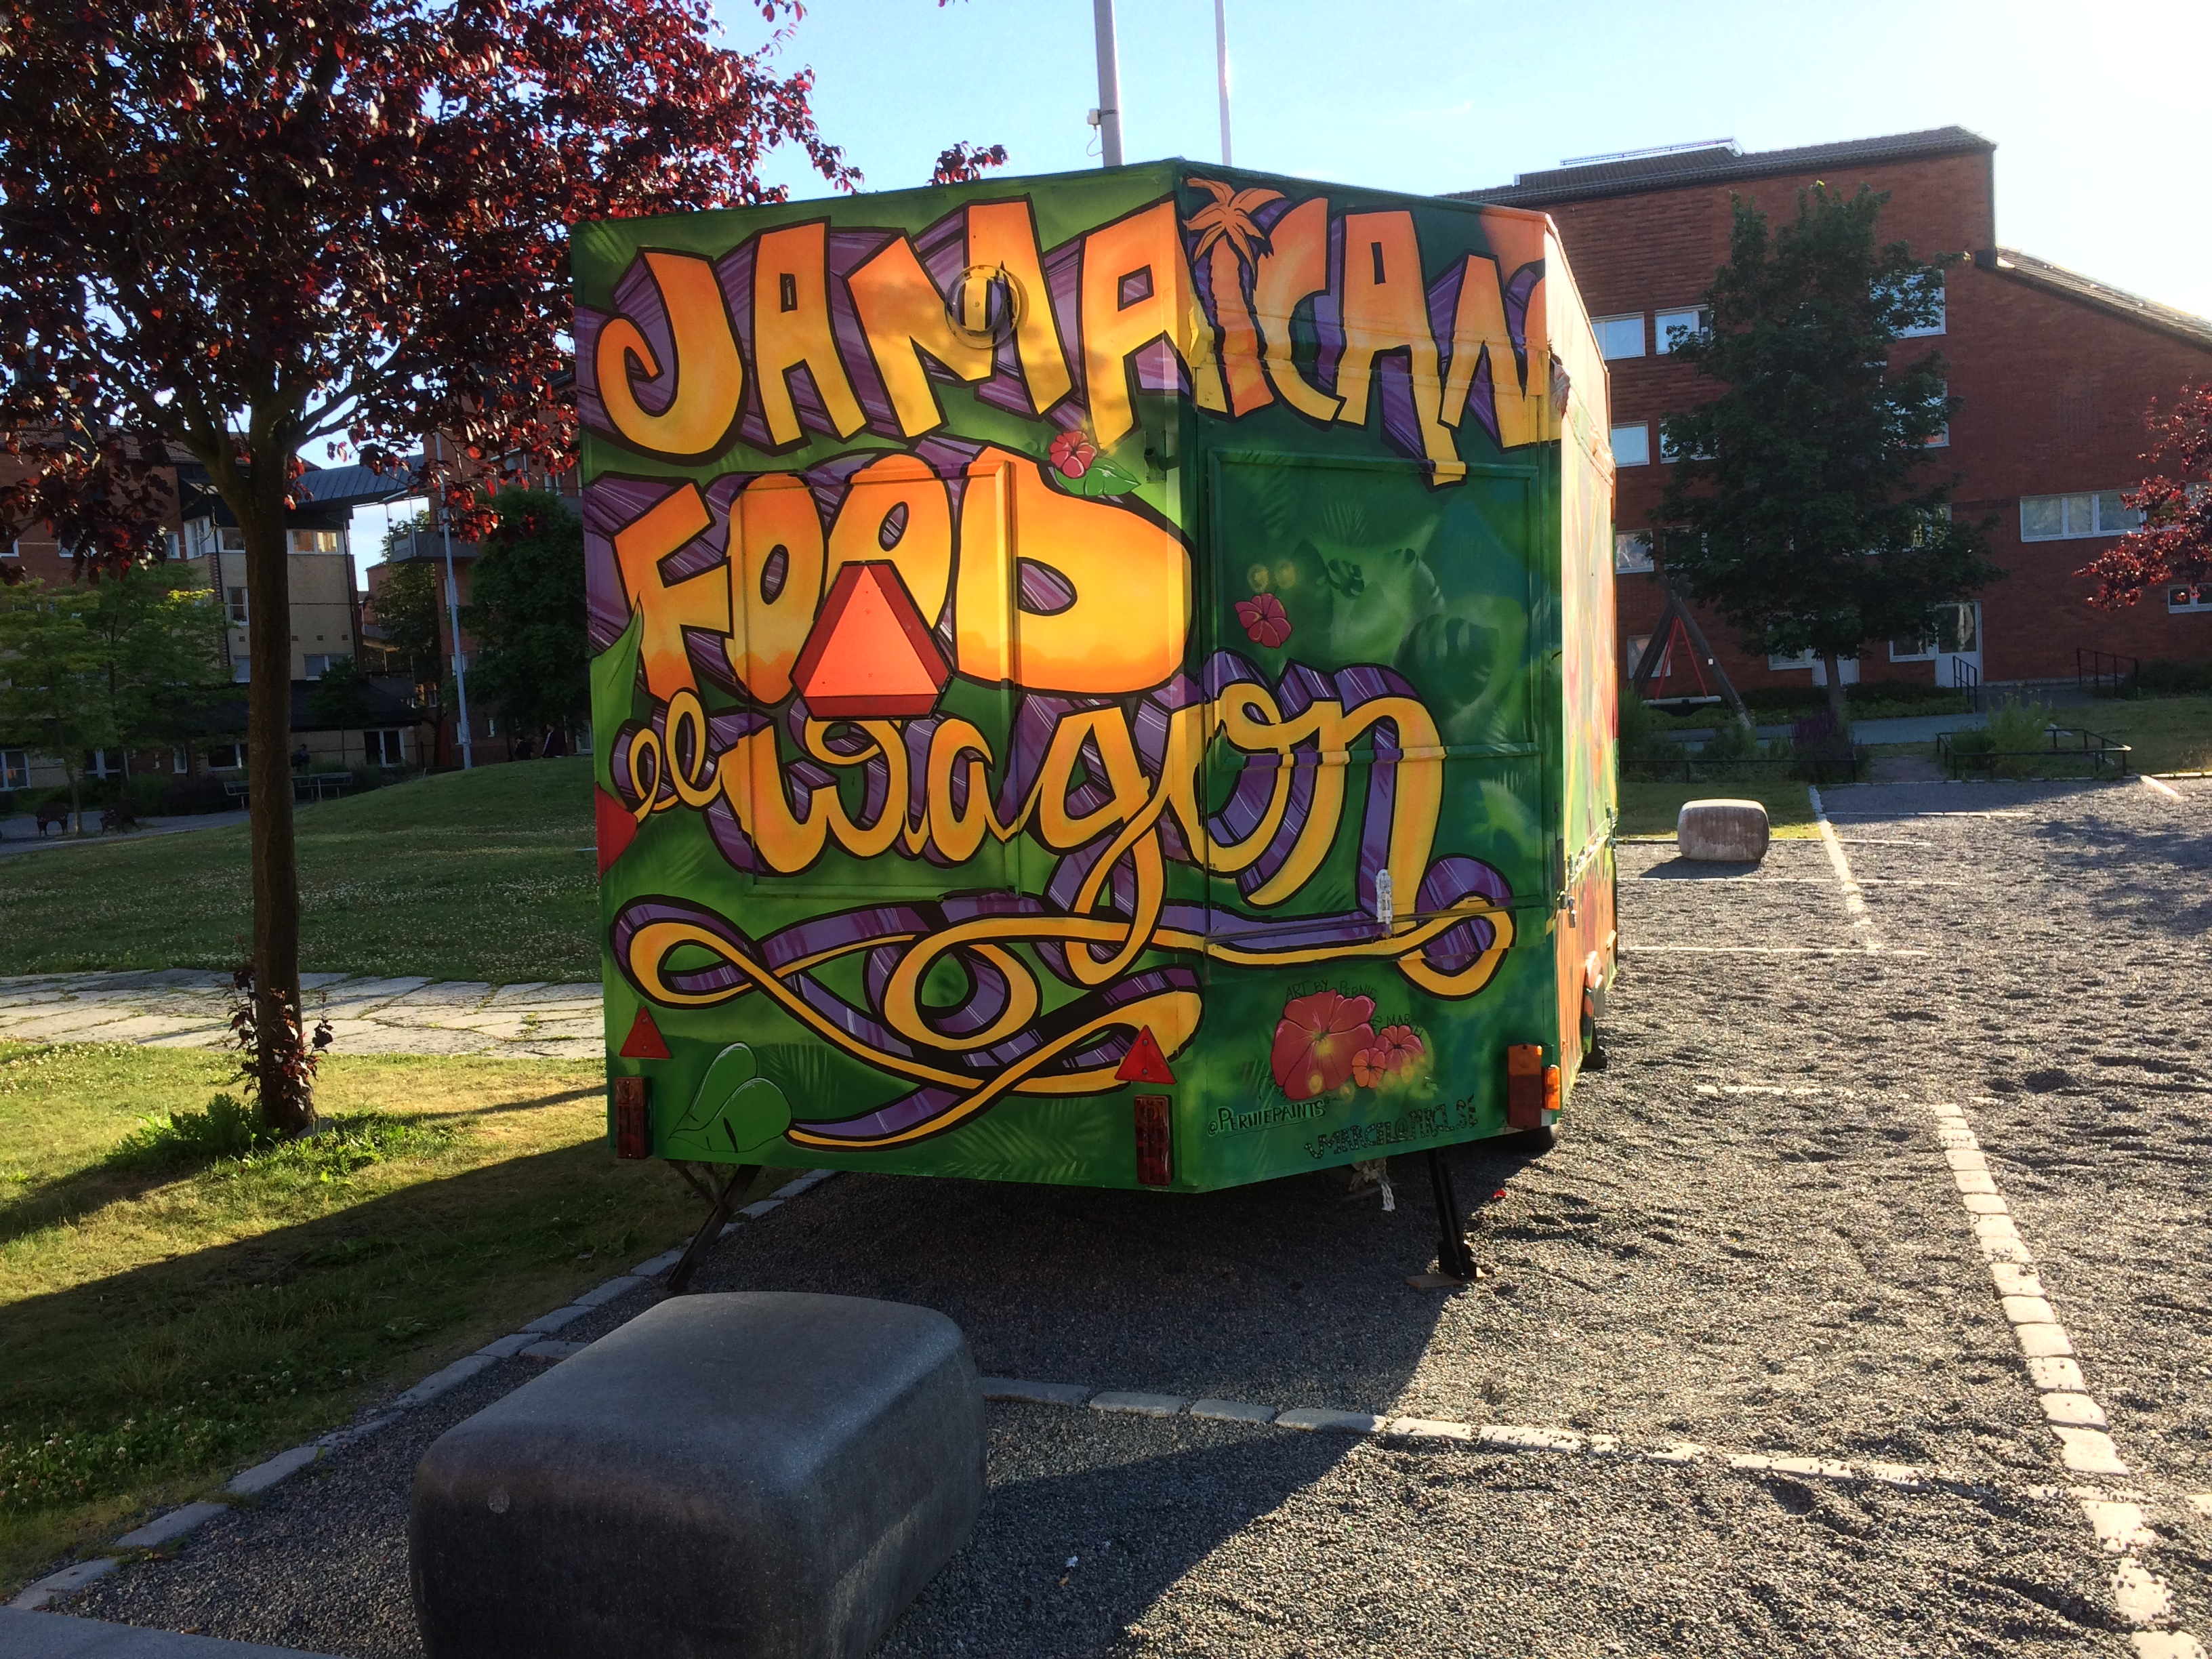 Jamaican food wagon